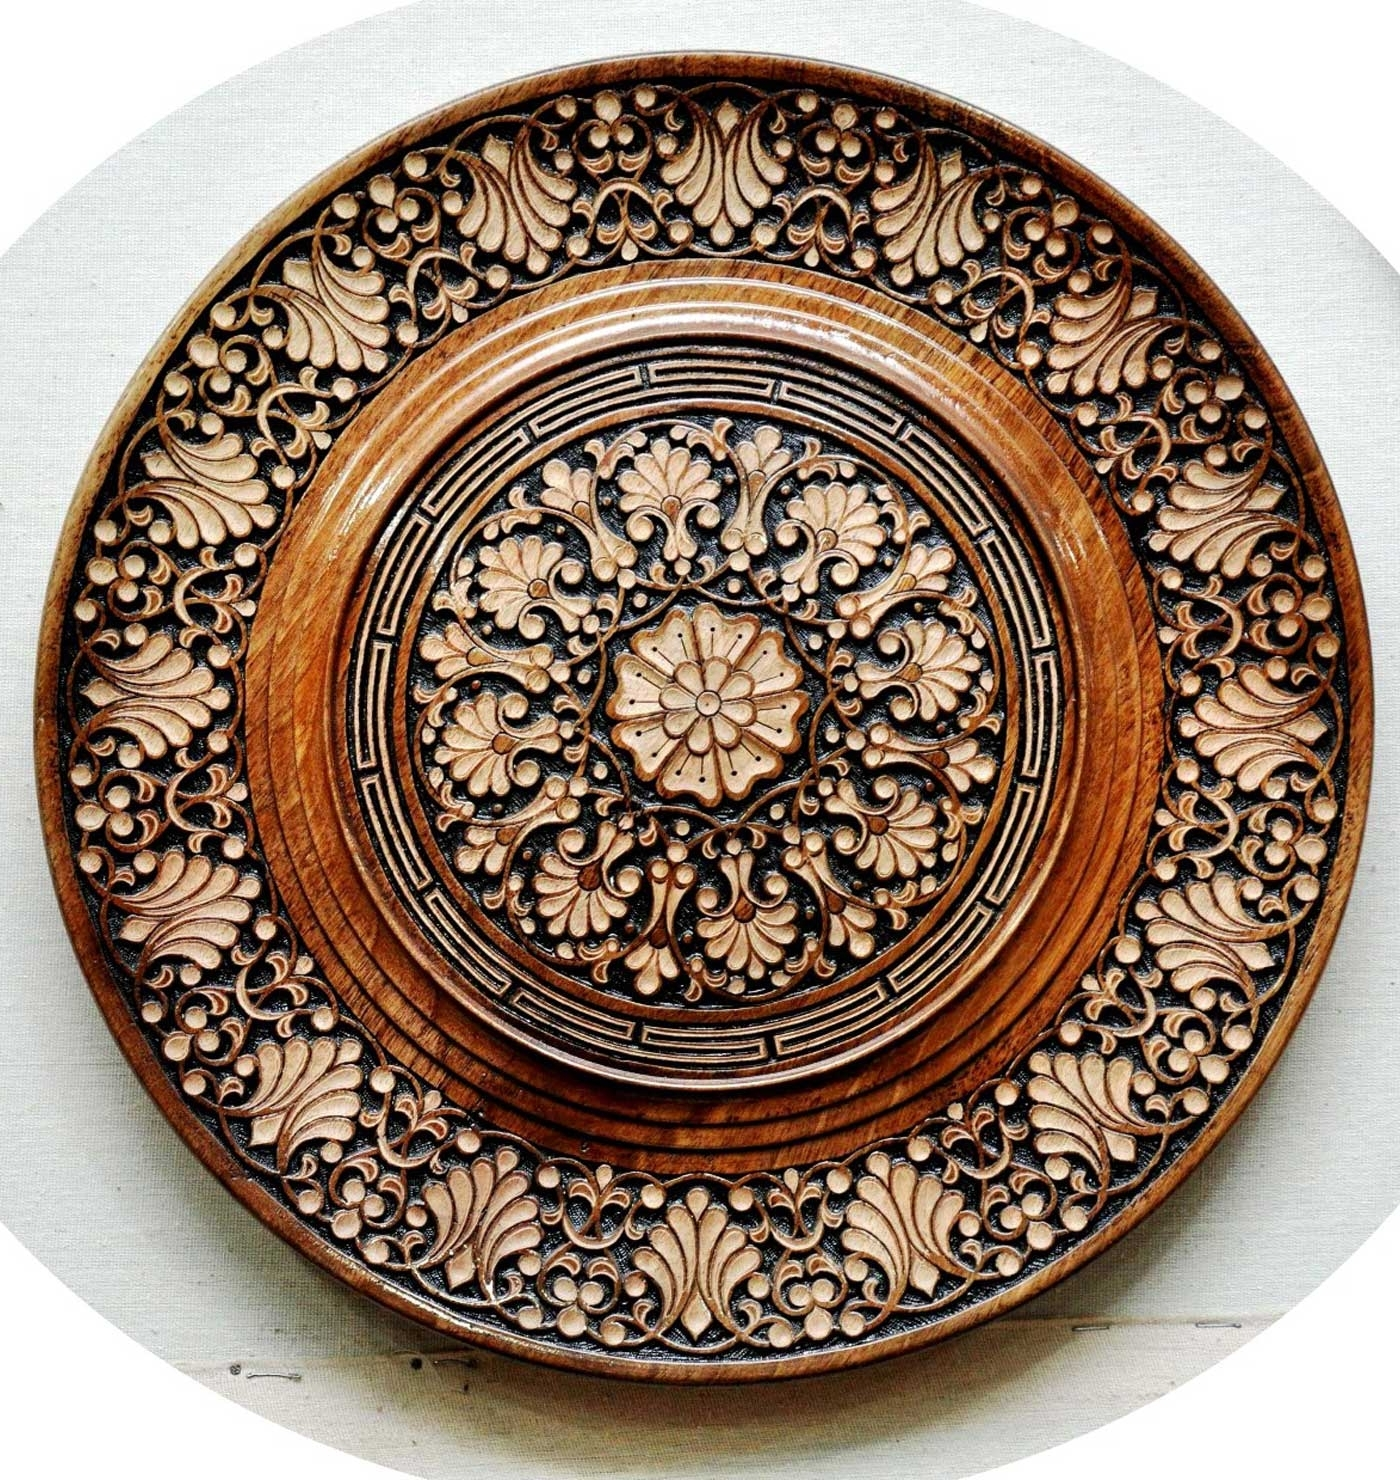 Most Recently Released Decorative Plates For Wall Art In Wall Decor: Awesome Decorative Kitchen Plates For Wall Wall Plates (View 11 of 15)